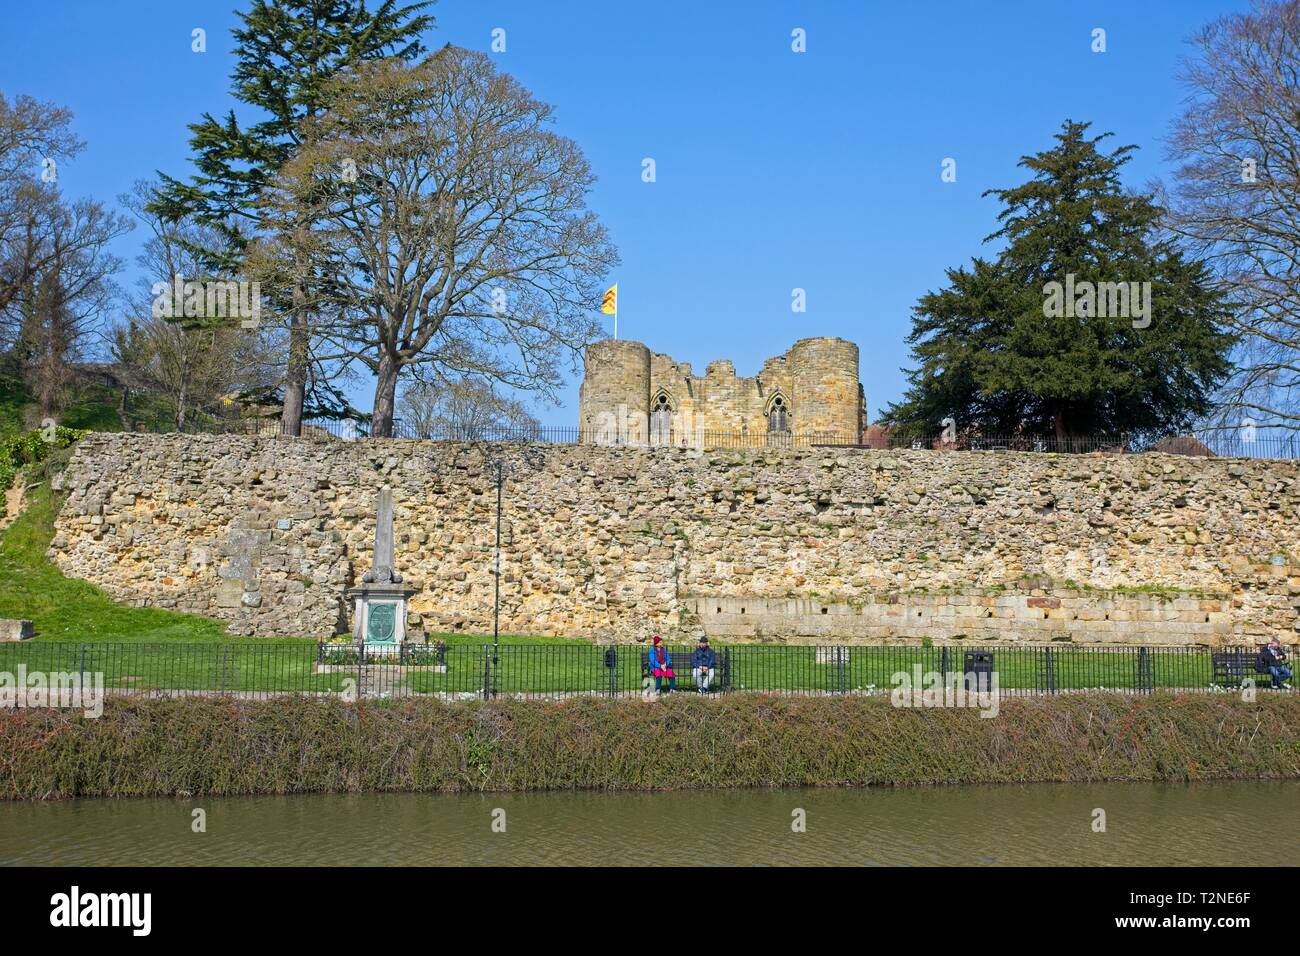 The River Medway and Tonbridge Castle Gatehouse, Kent,England - Stock Image